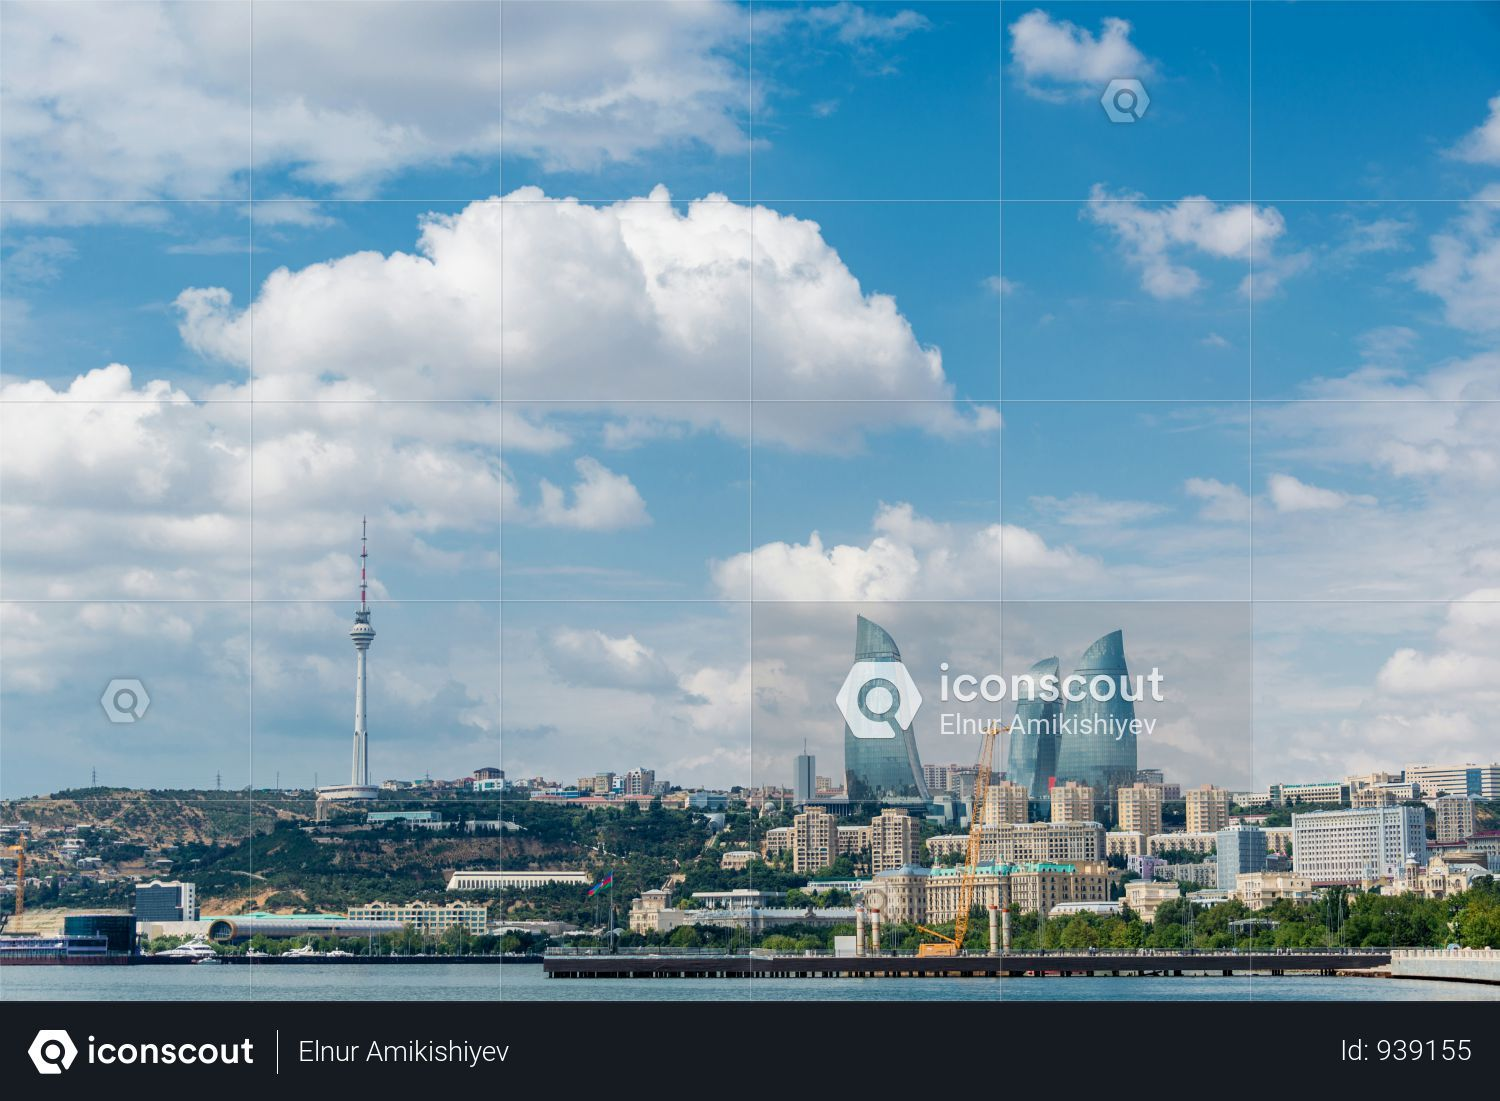 Premium Day View Of Baku Azerbaijan Architecture Photo Download In Png Jpg Format Architecture Photo Photo Baku Azerbaijan